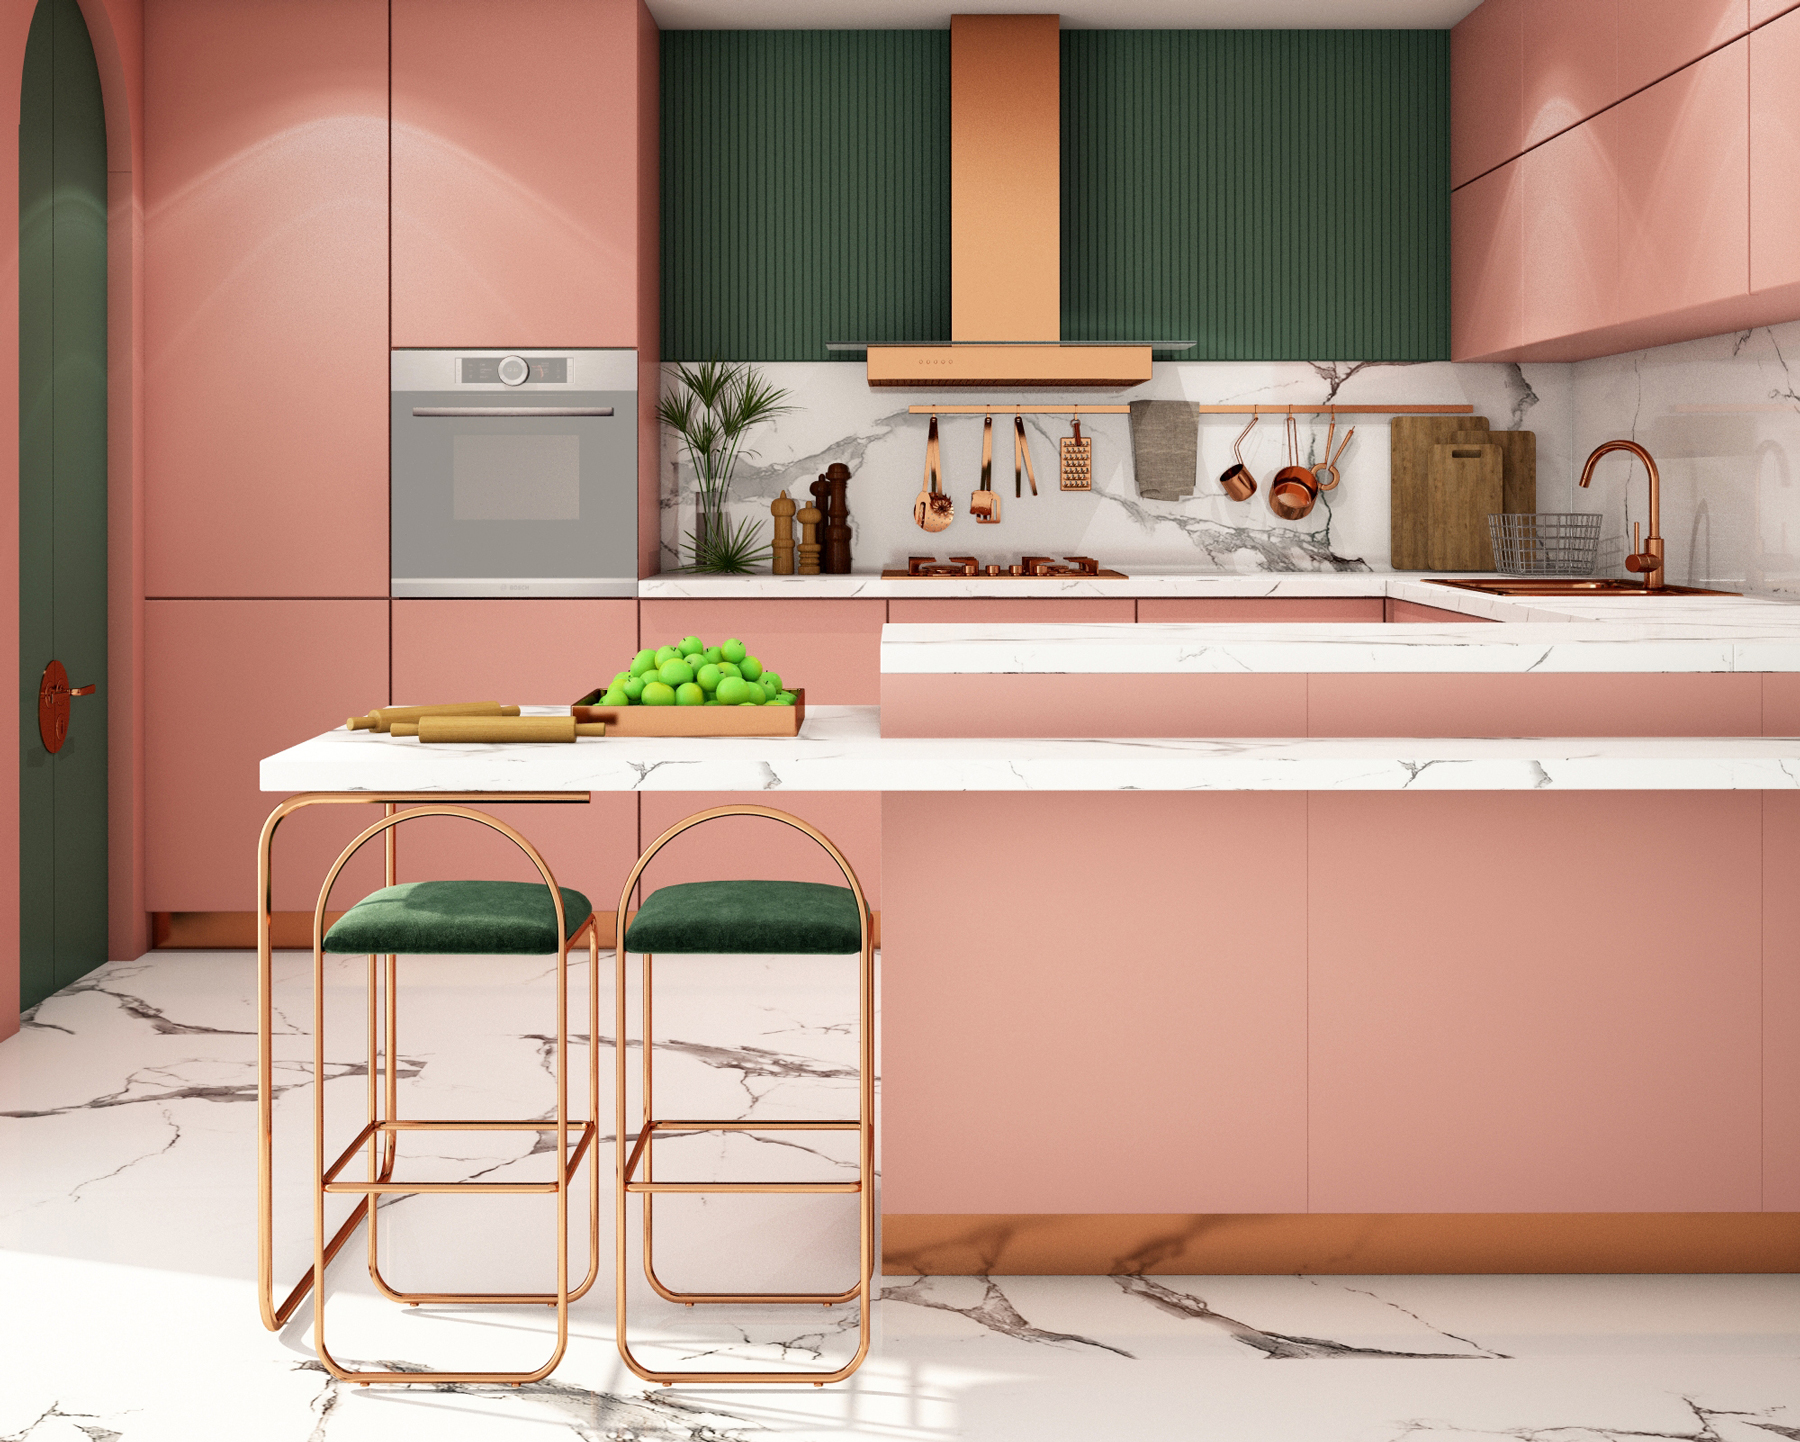 How to Paint Kitchen Cabinets: 7-Step Guide | Real Simple ...